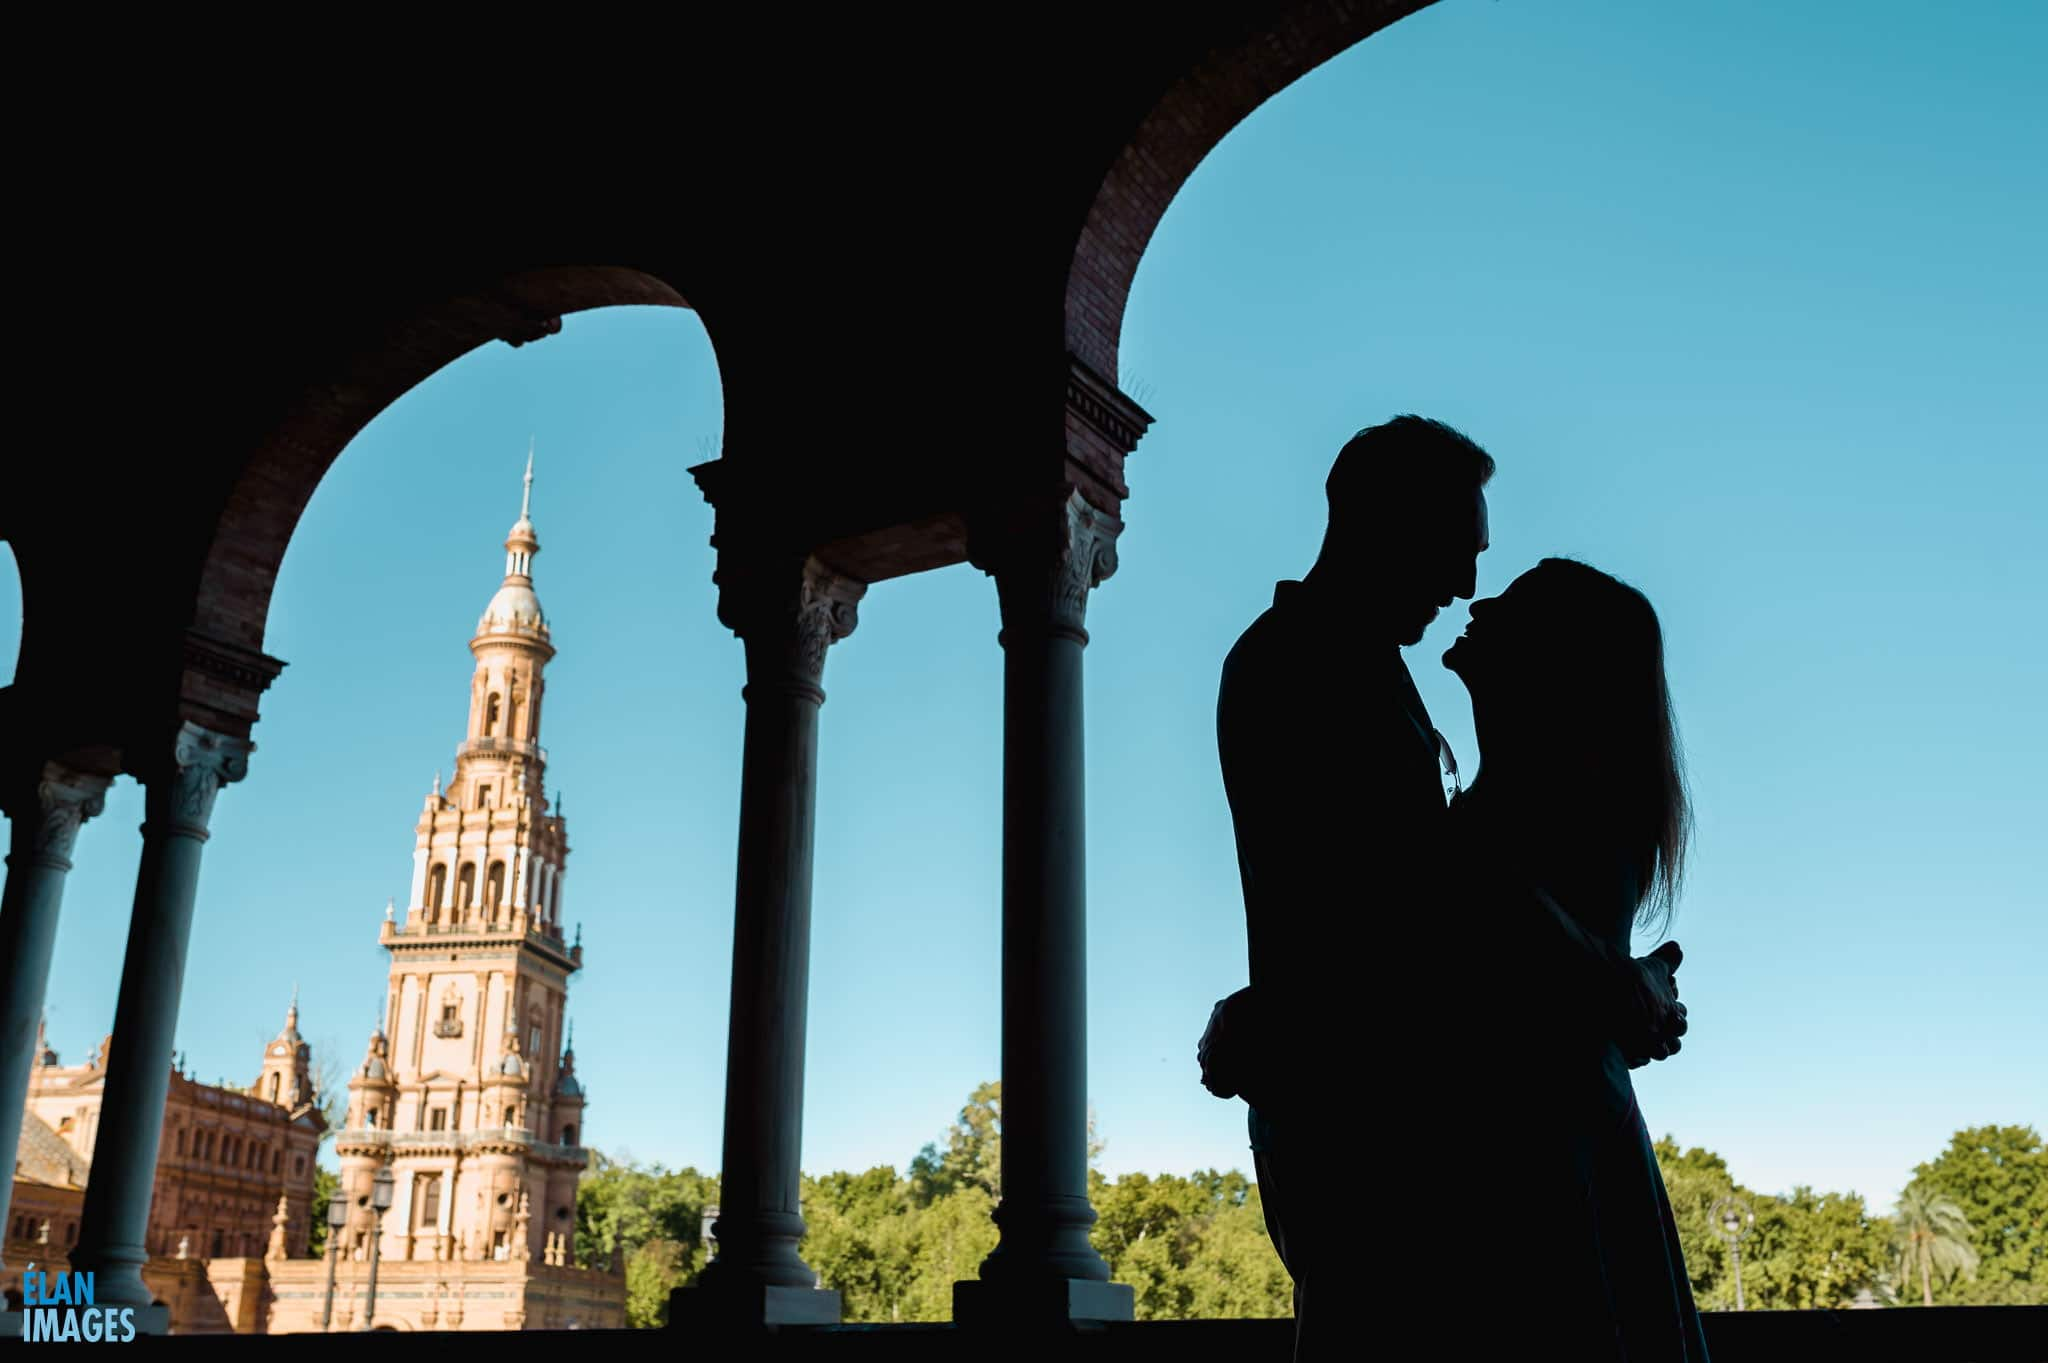 Engagement photos at the Plaza de Espania, Seville